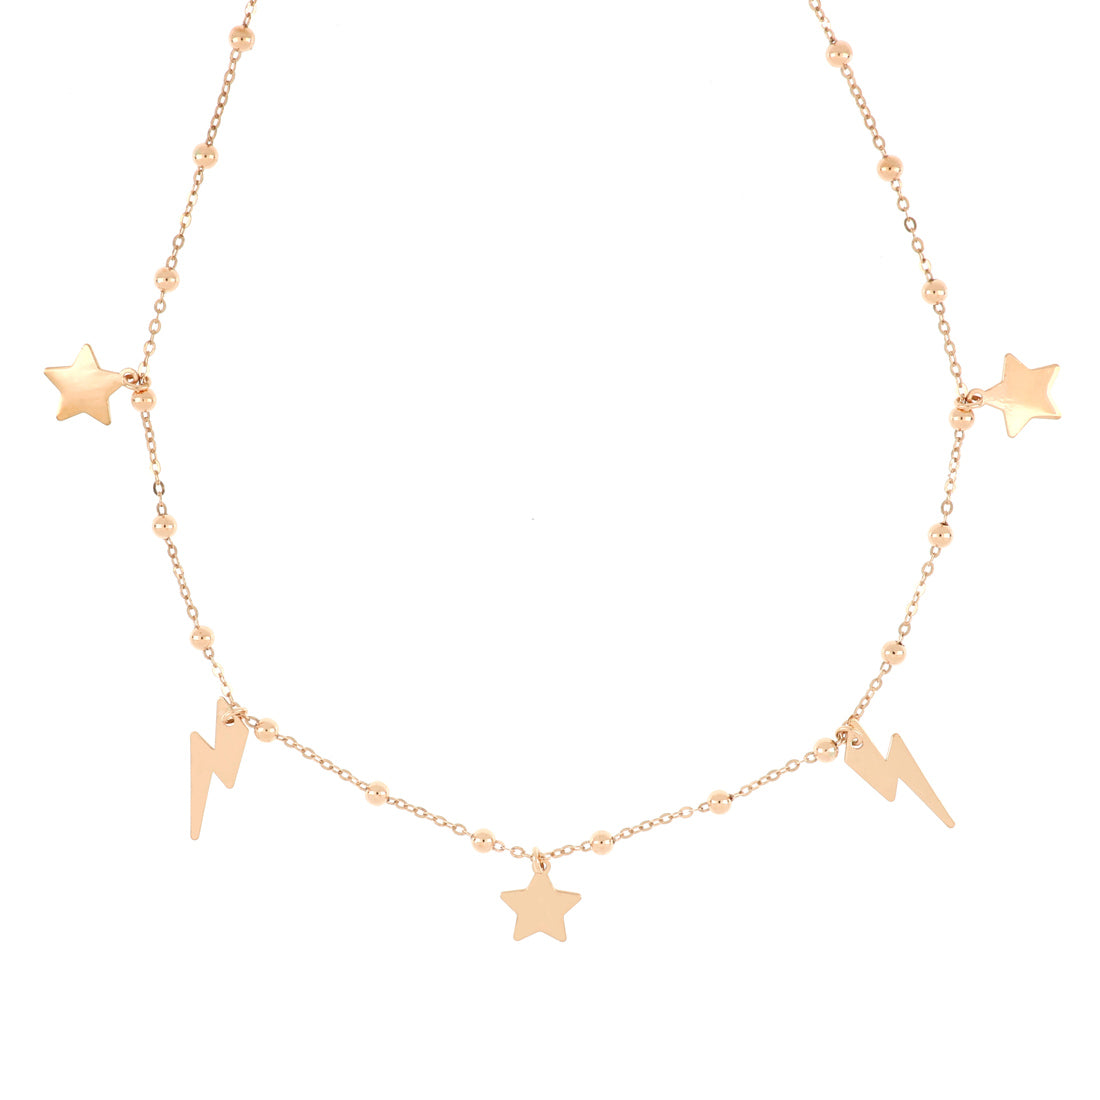 Collana in oro rosa con stelle e saette alternati